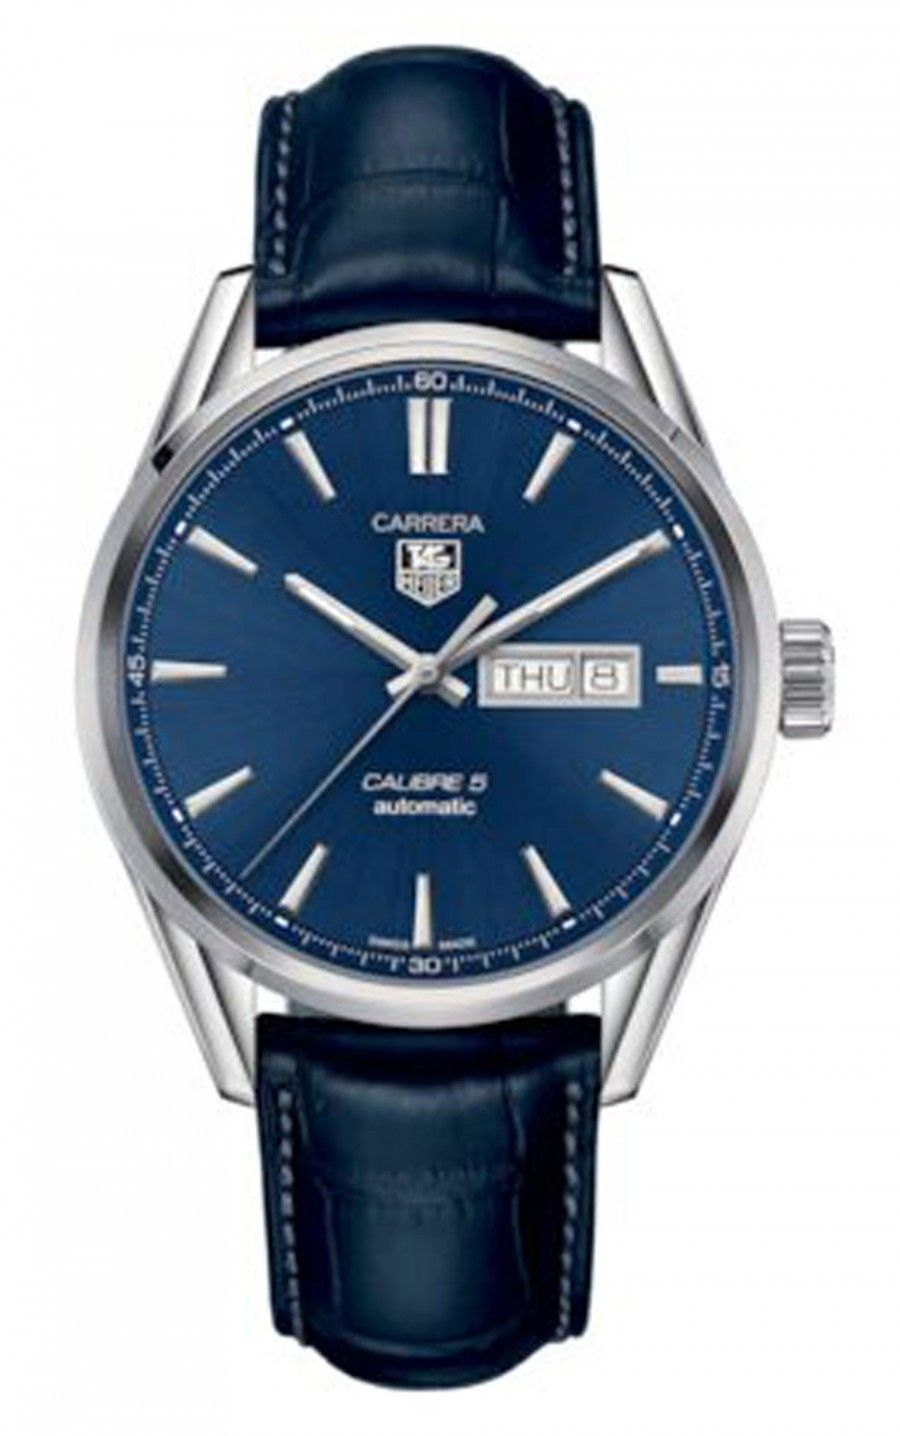 Hình Đồng hồ TAG HEUER CARRERA - Automatic Watch - Diameter 41 mm WAR201E.FC6292